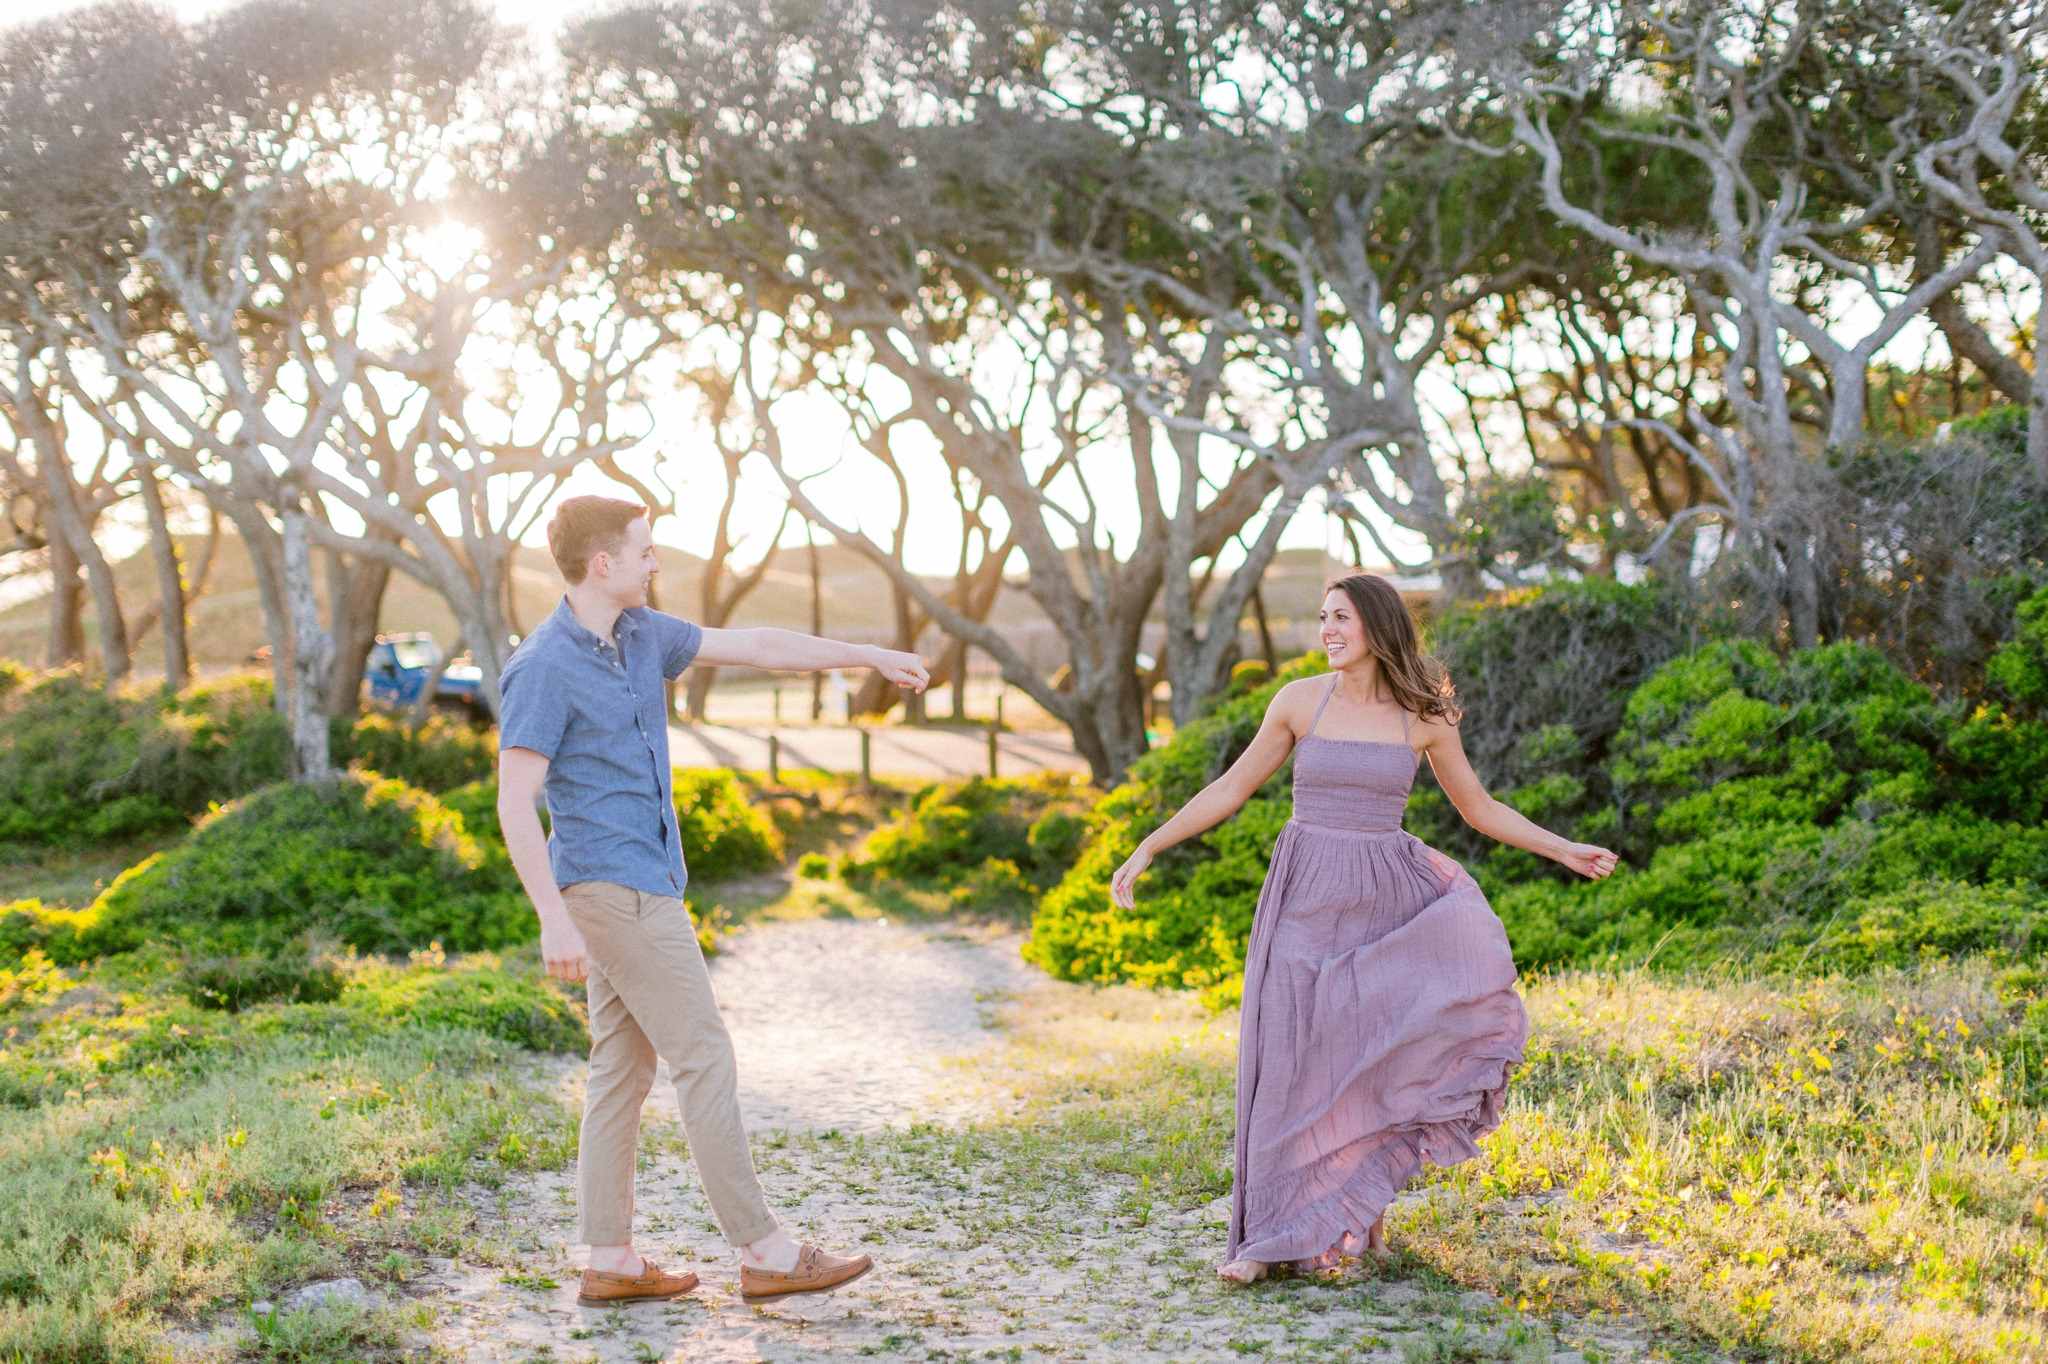 Guy dancing with girl in front of live oak trees with the sunset behind them - Woman is in a flowy pastel maxi dress - outdoor golden light session - engagement photographer in honolulu, oahu, hawaii - johanna dye photography